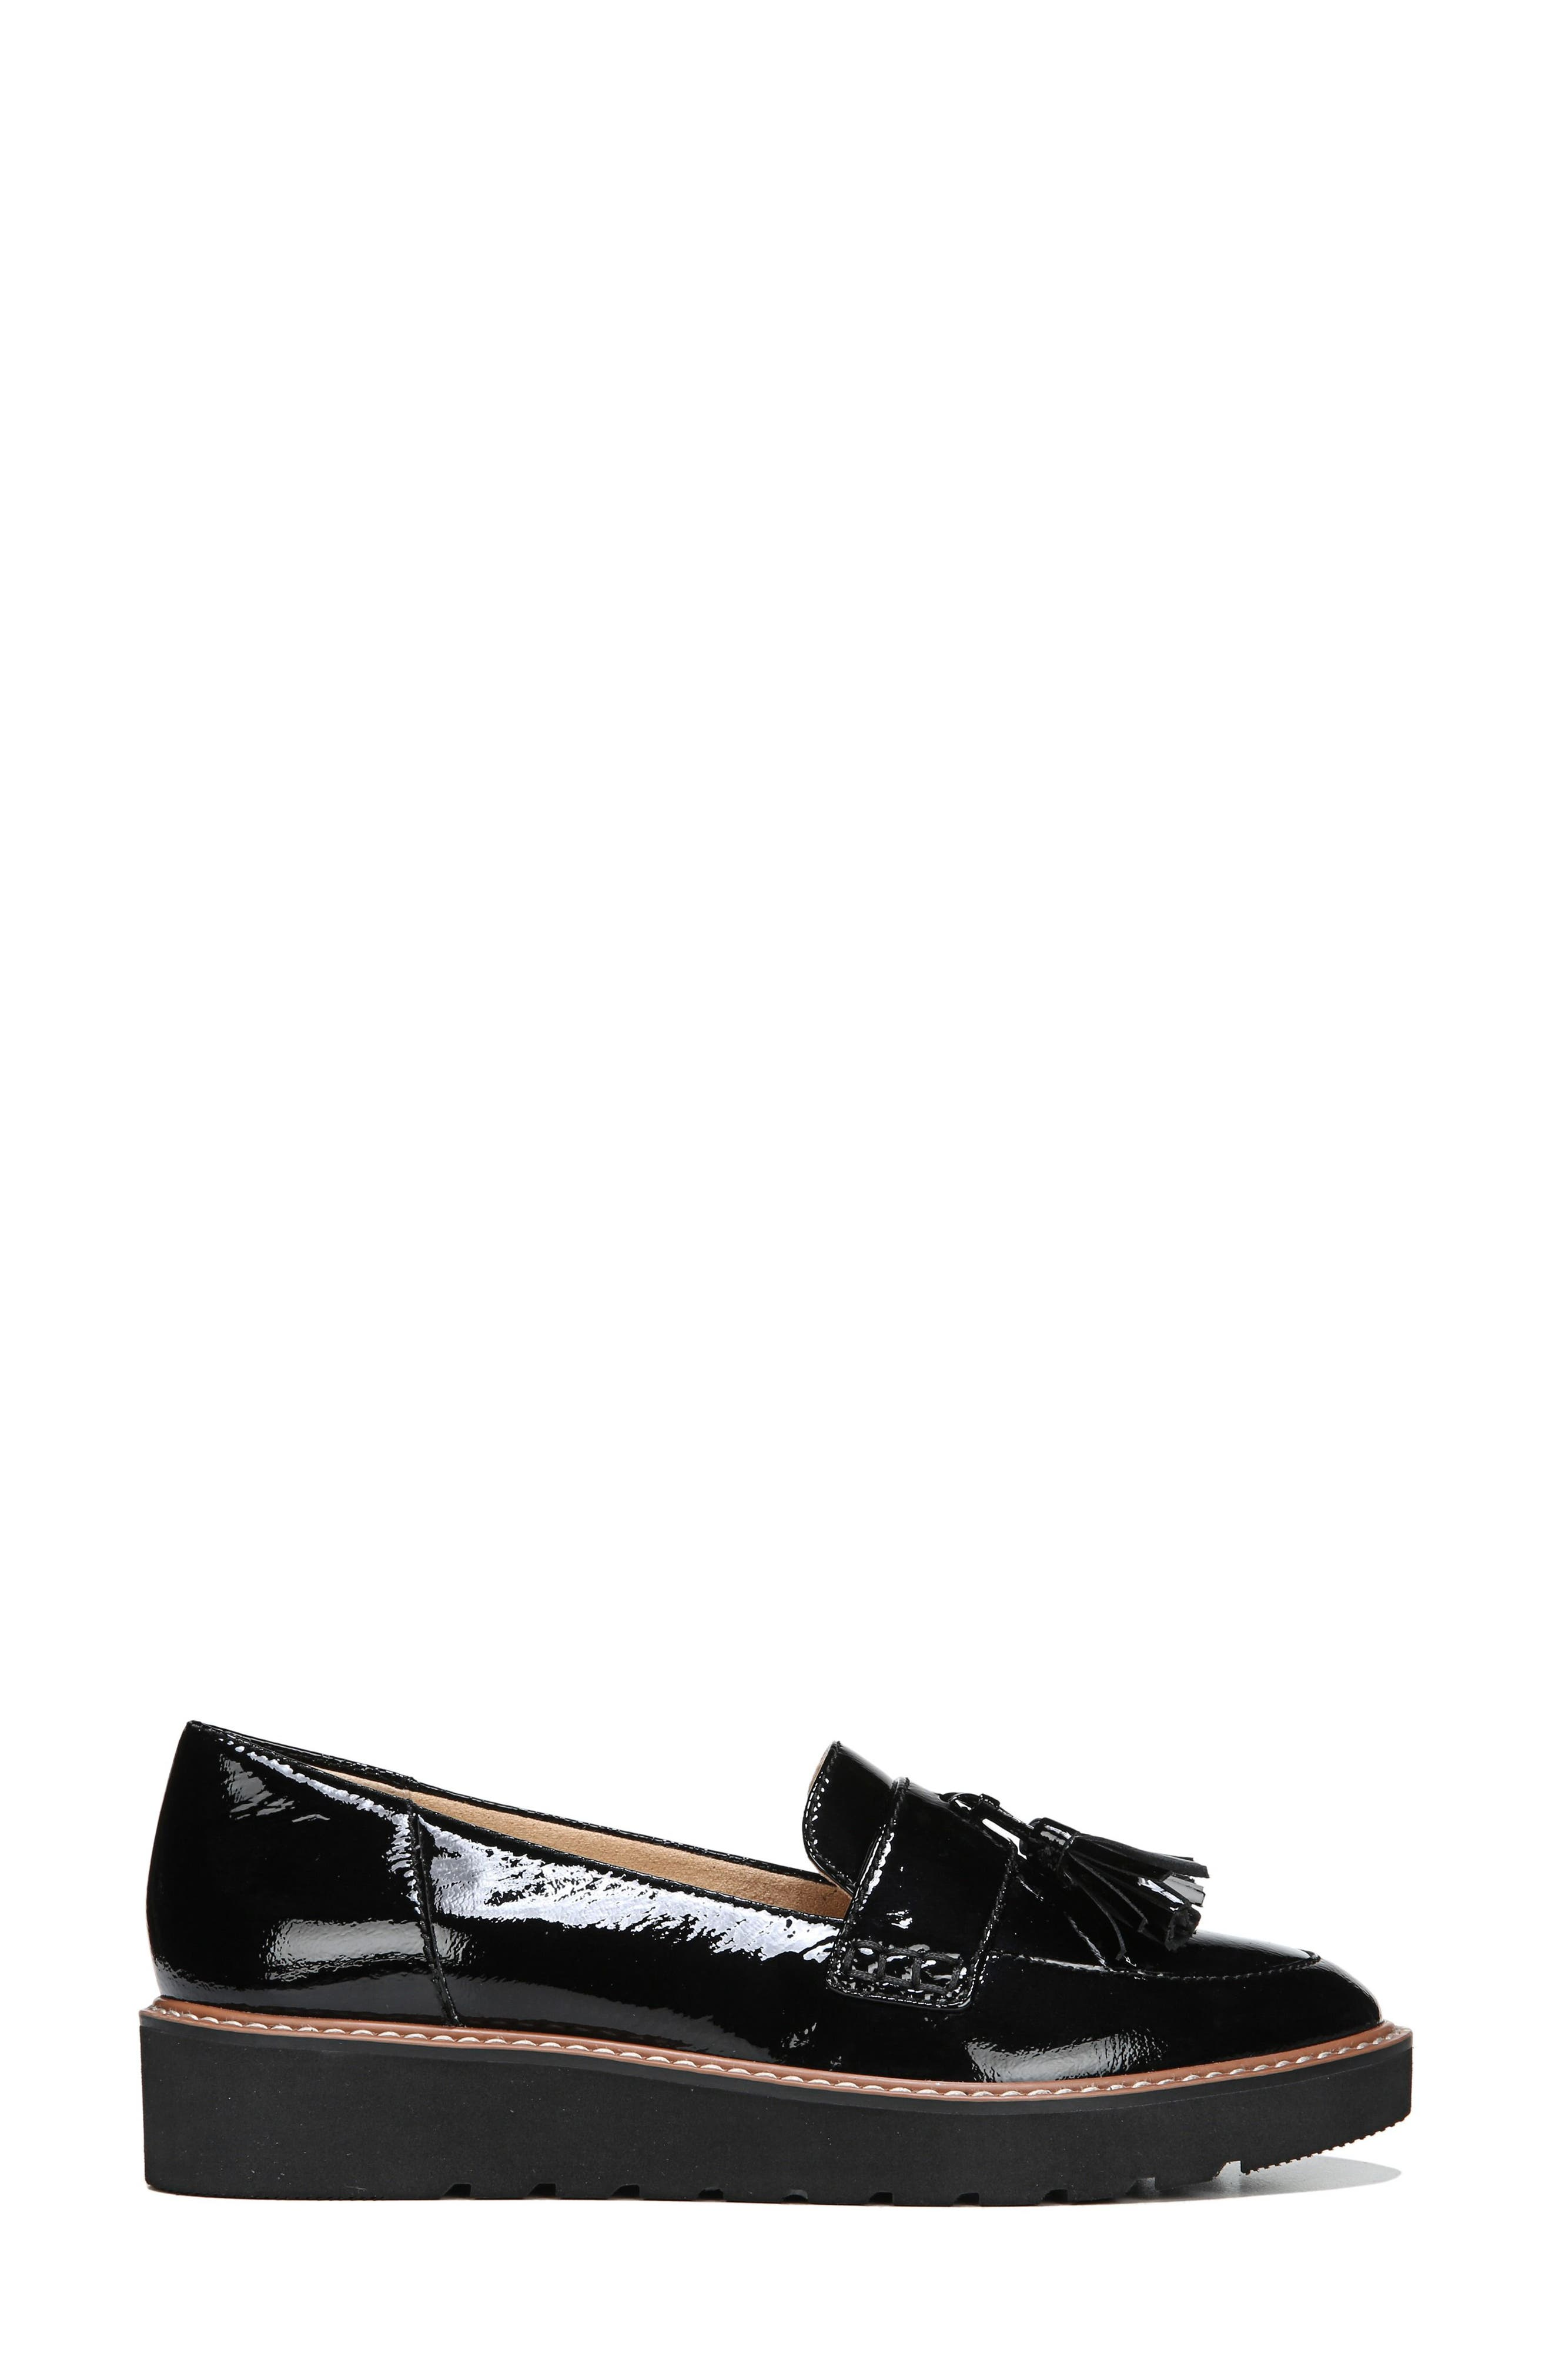 Alternate Image 3  - Naturalizer August Loafer (Women)